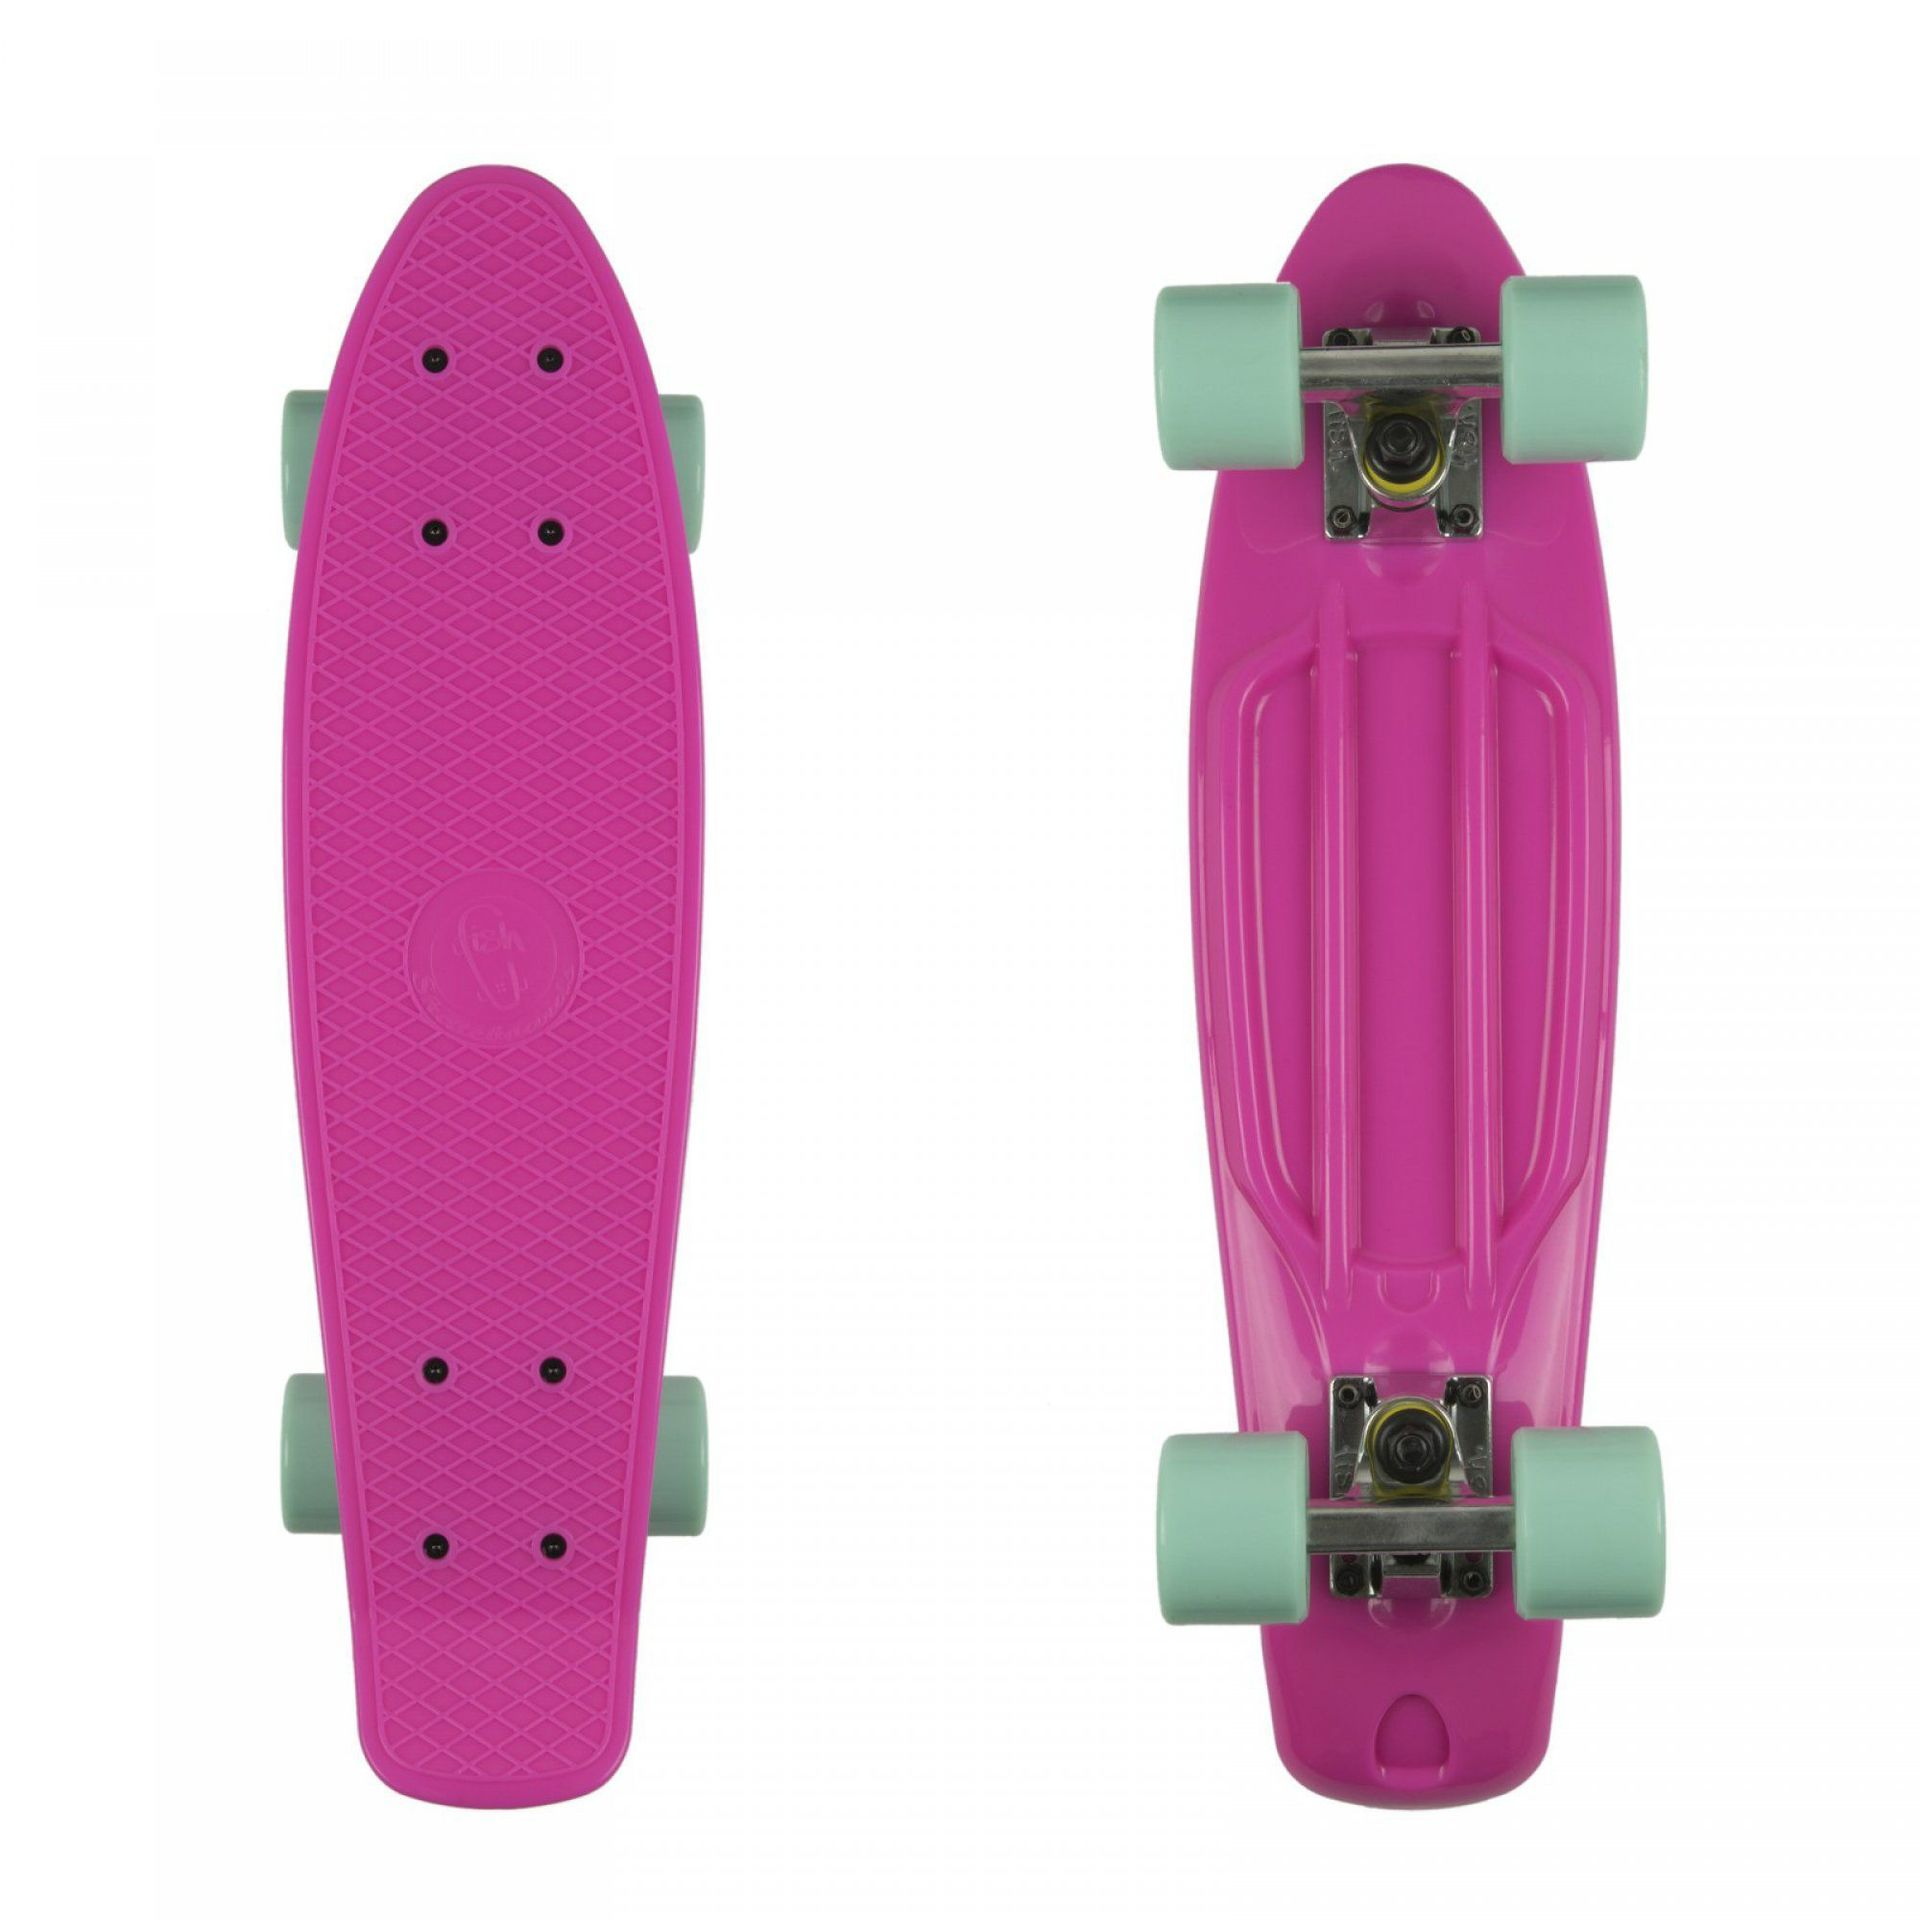 FISHBOARD FISH SKATEBOARDS CLASSIC MAGENTA|SILVER|SUMMER GREEN 1